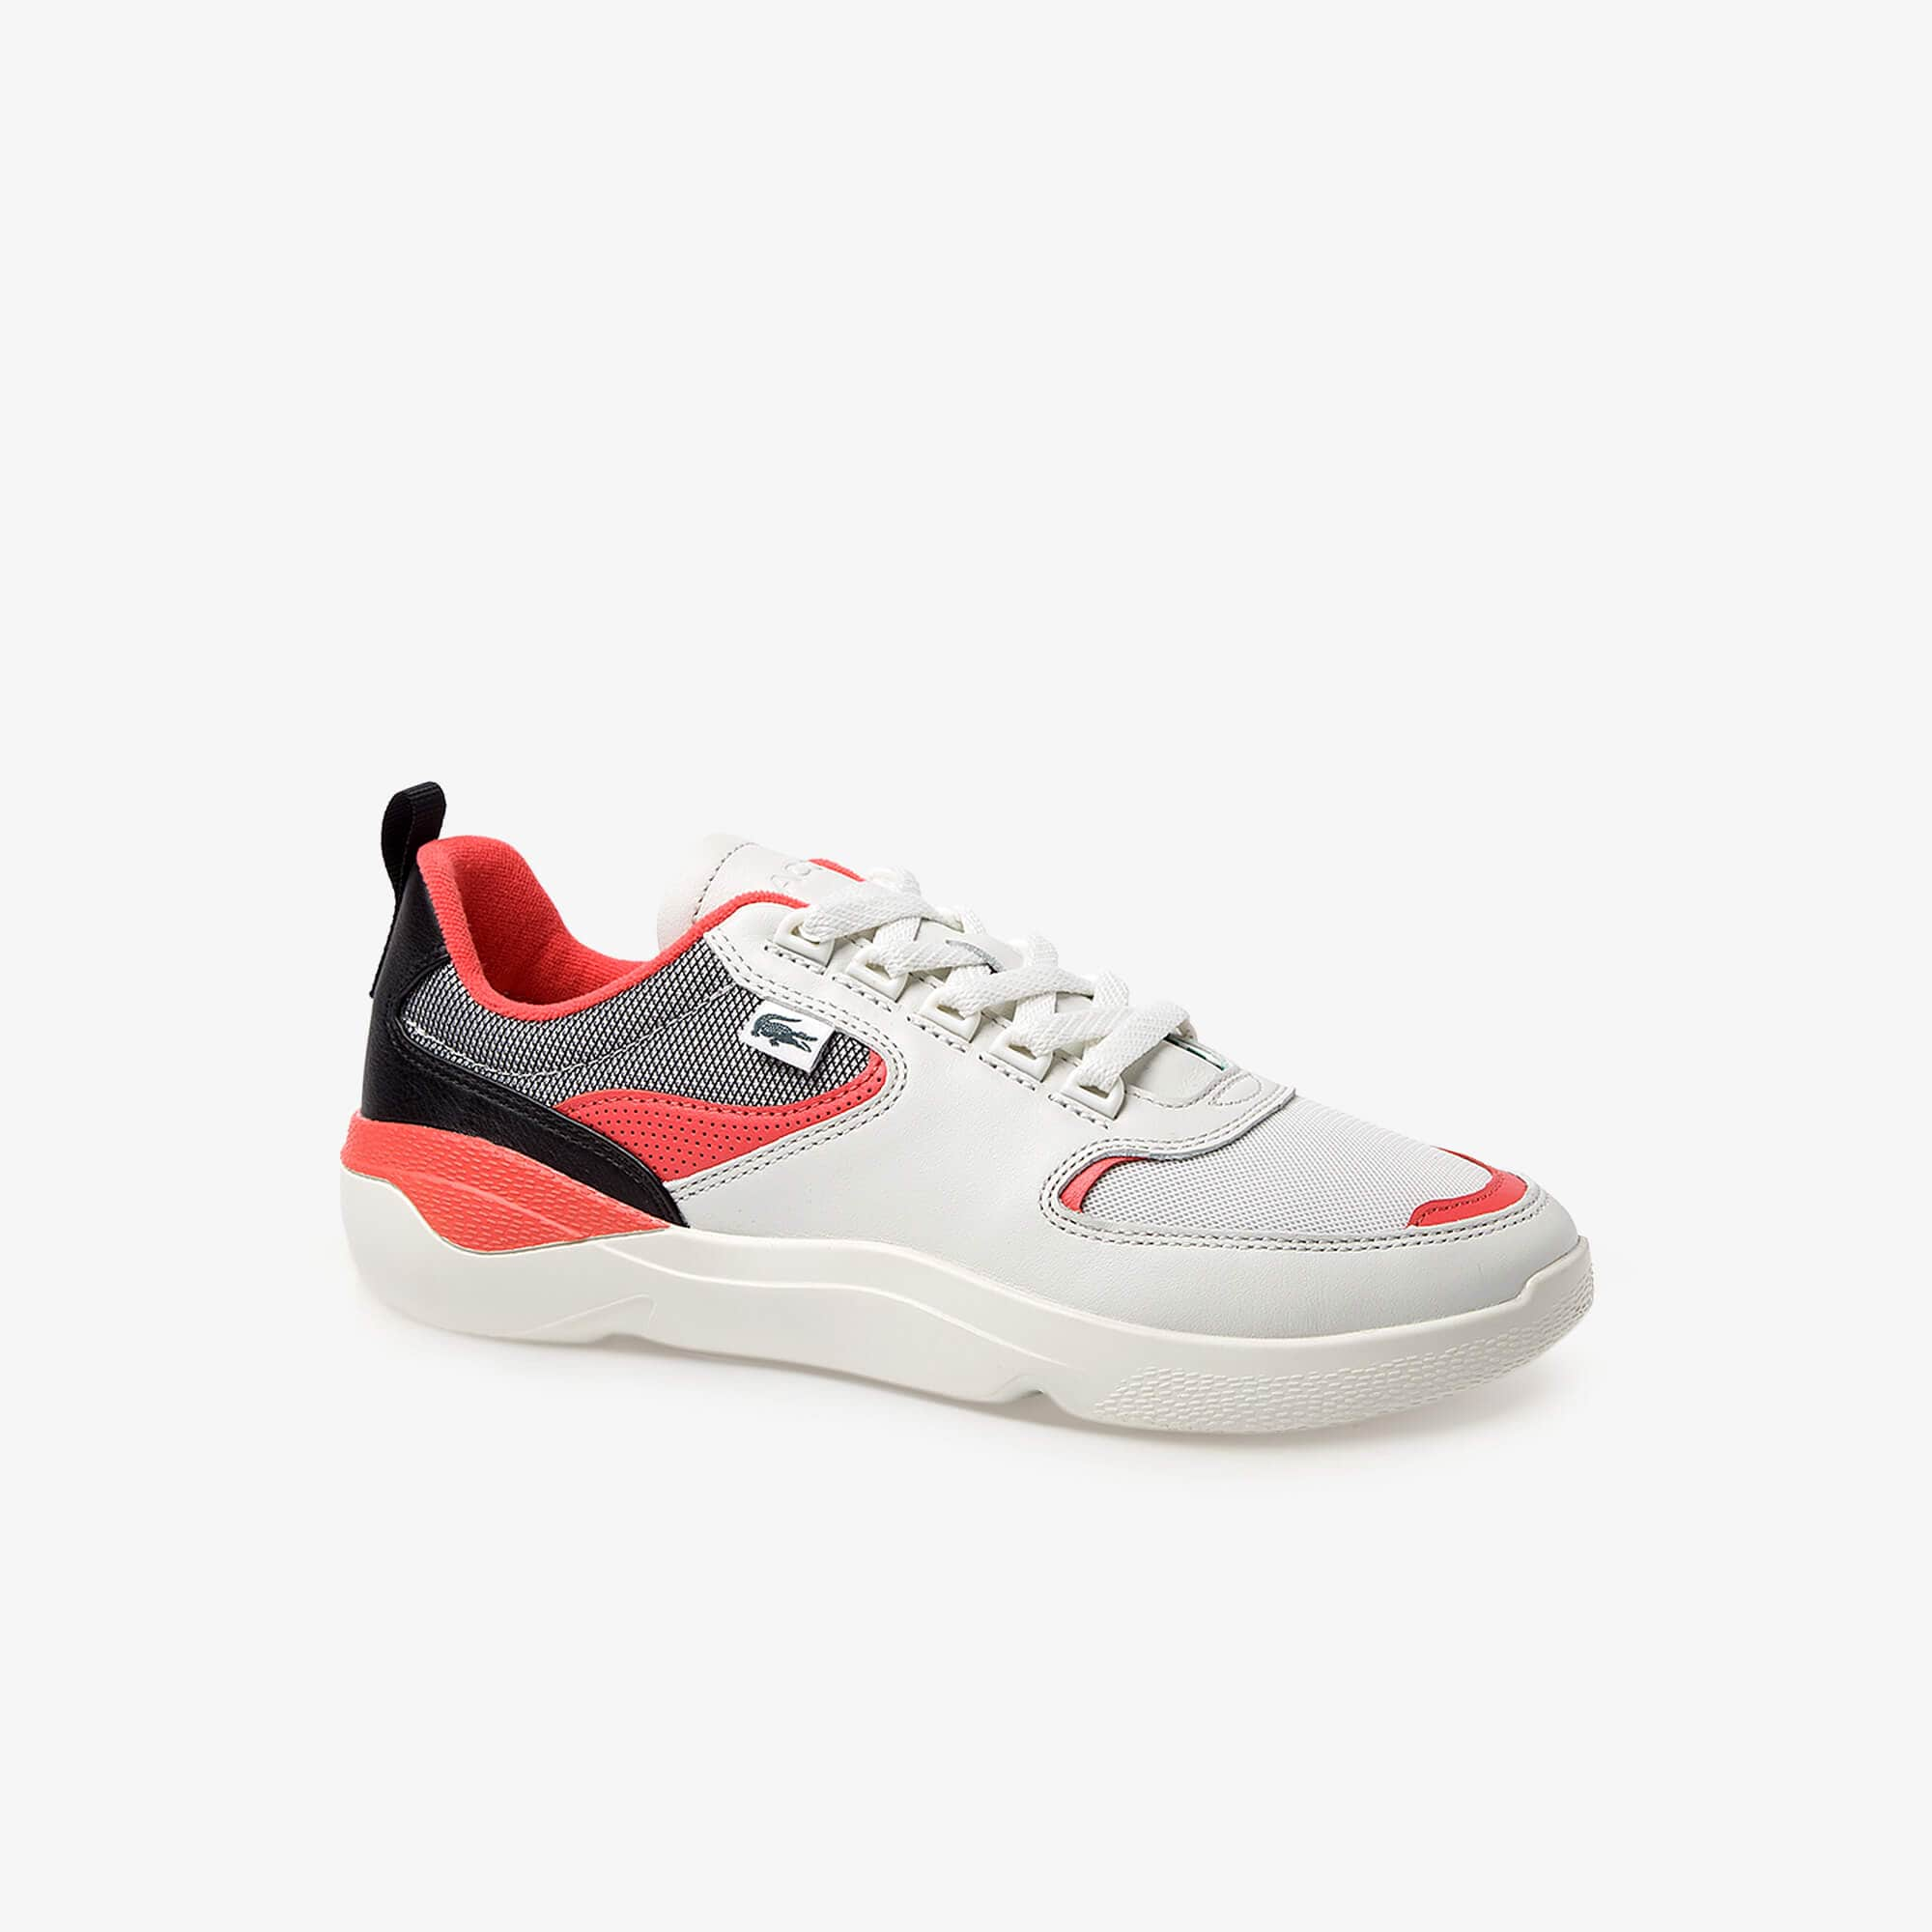 Lacoste Sneakers Men's Wildcard Leather and Textile Sneakers